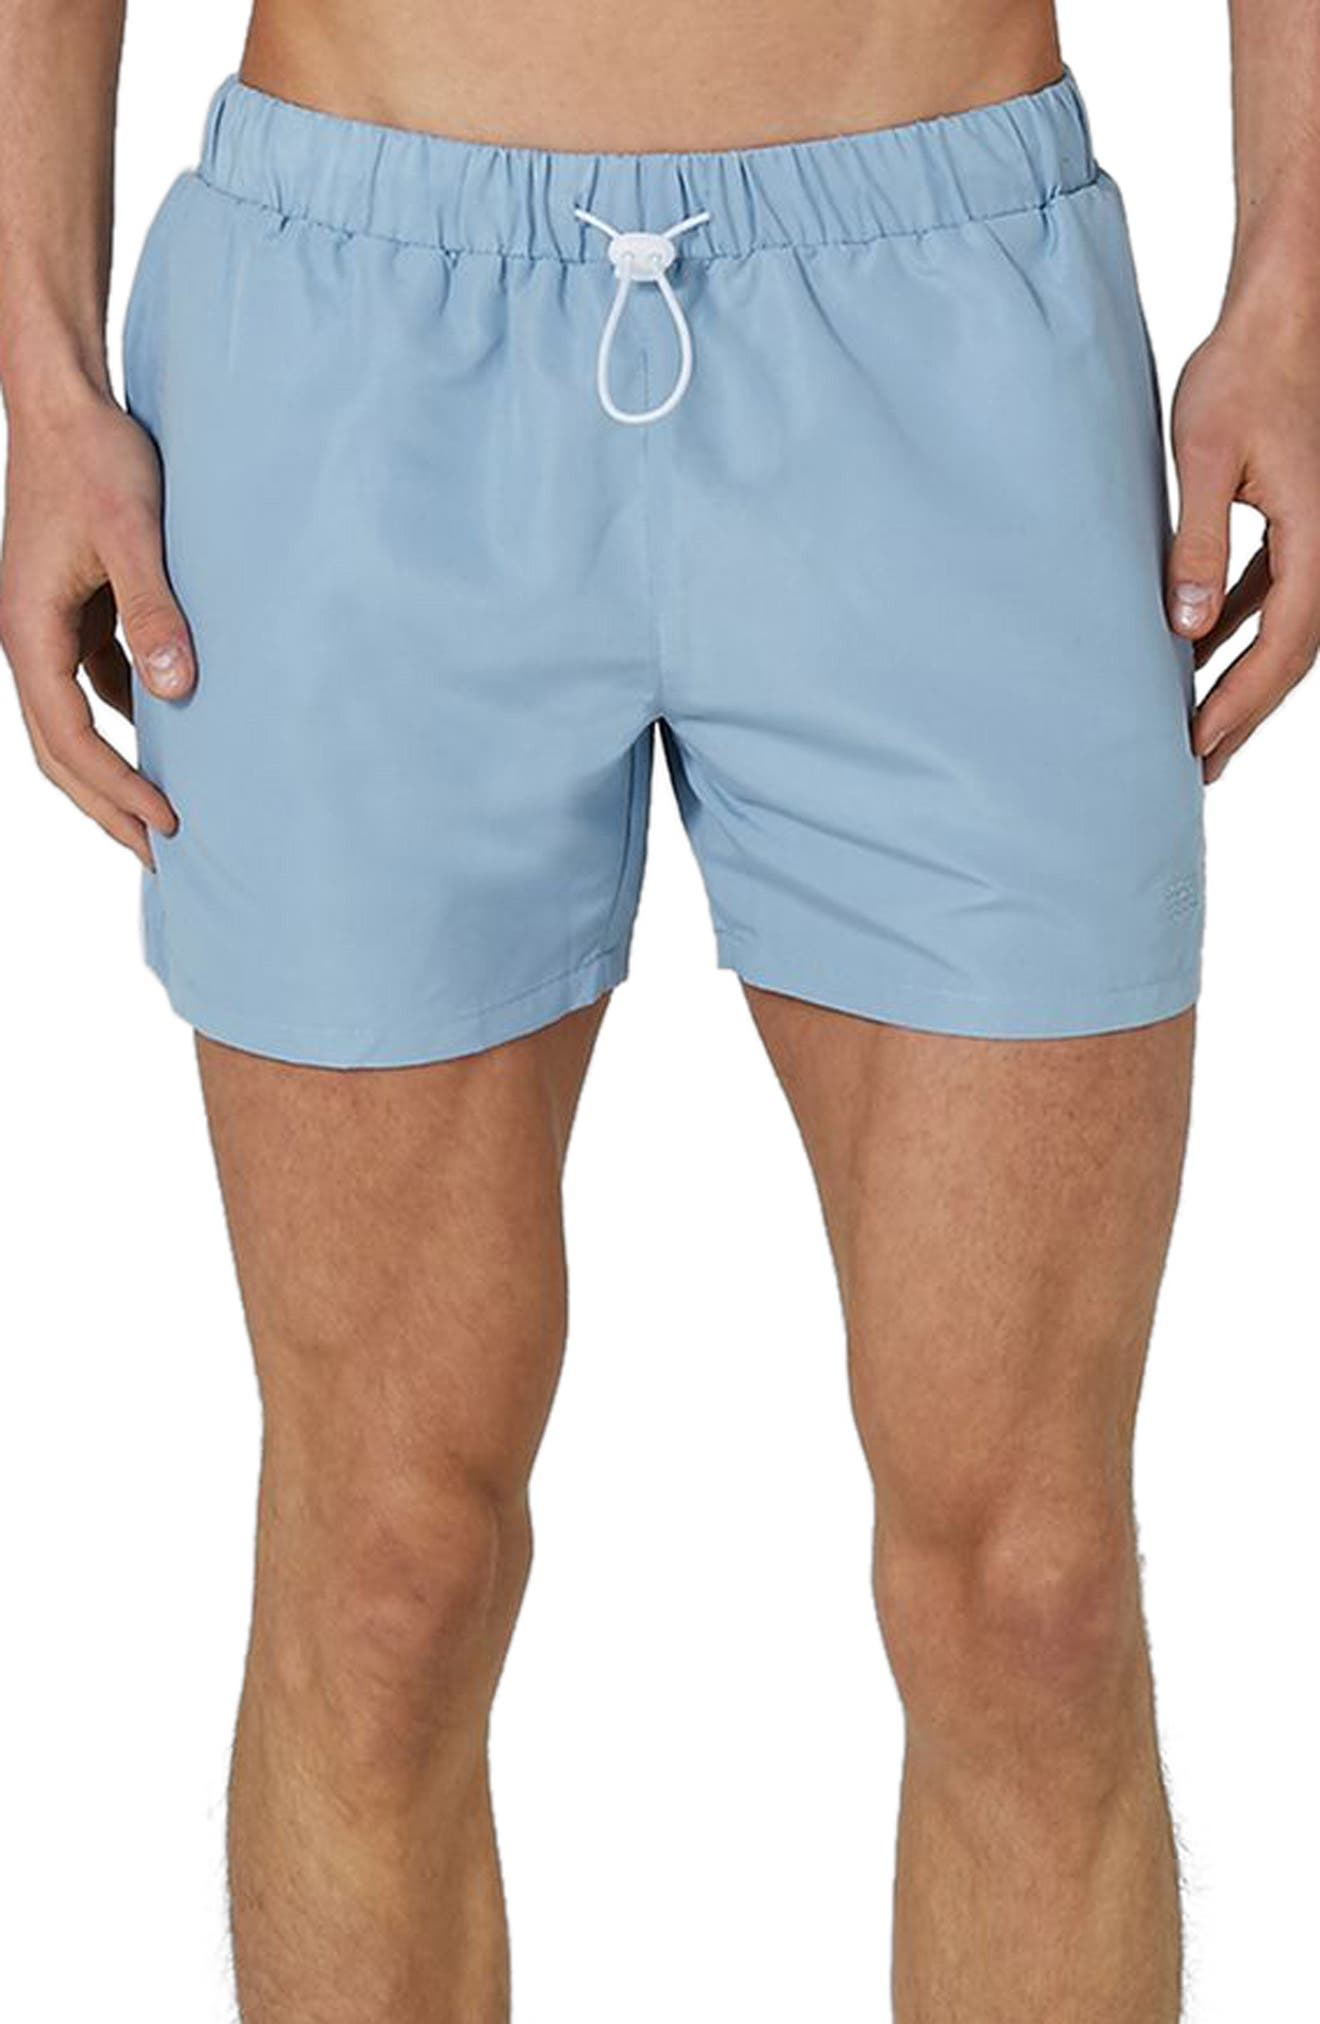 Neptune Swim Trunks,                         Main,                         color, Mid Blue